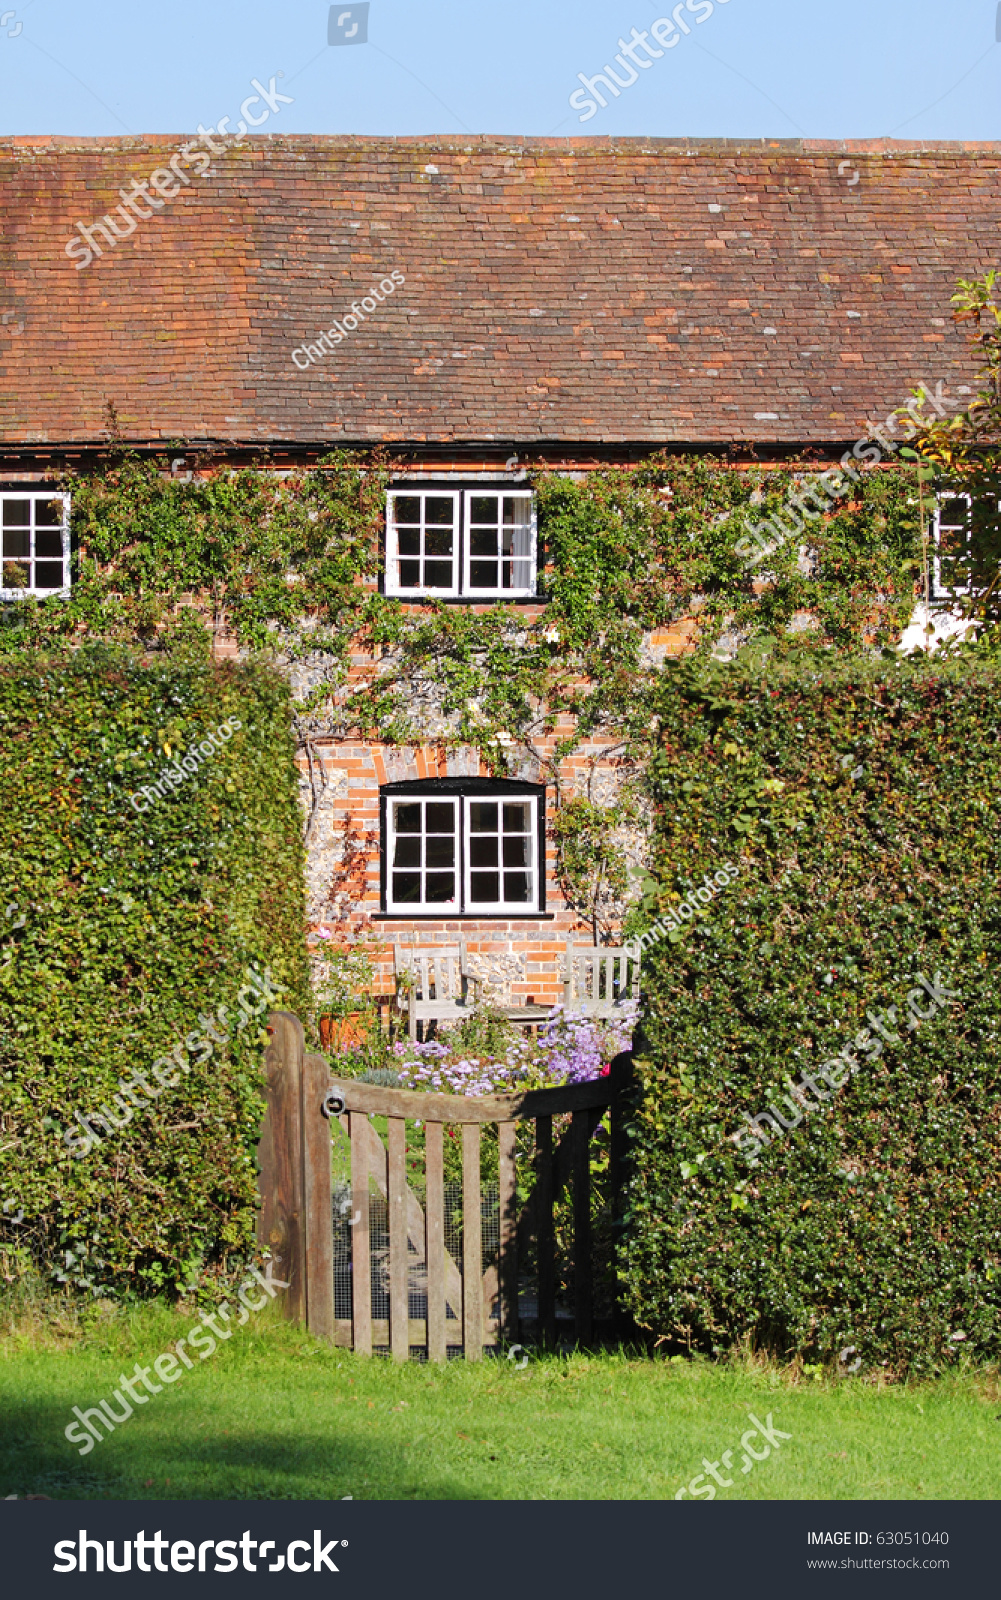 Traditional English Village Cottage And Garden With